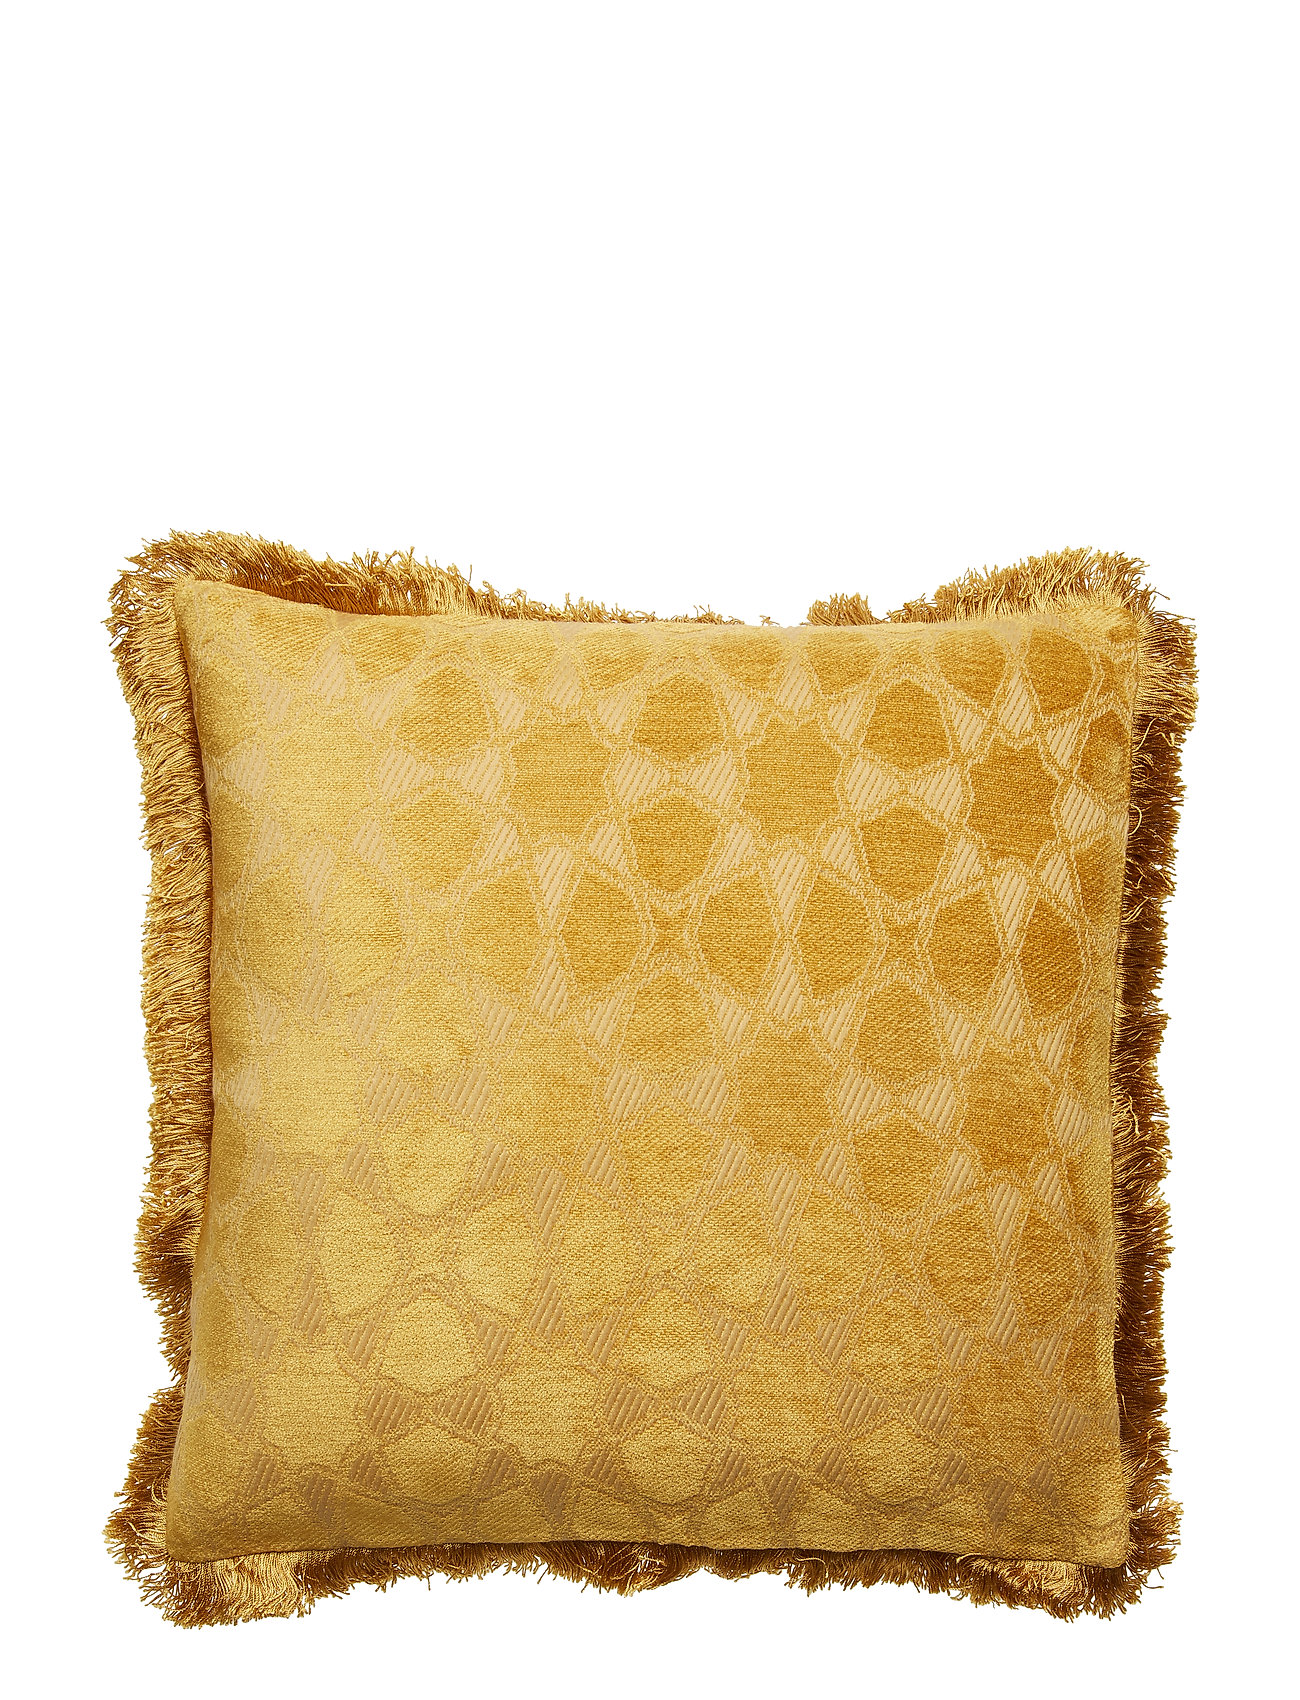 DAY Home Day Mahal Gold Cushion Cover Fringes - GOLD